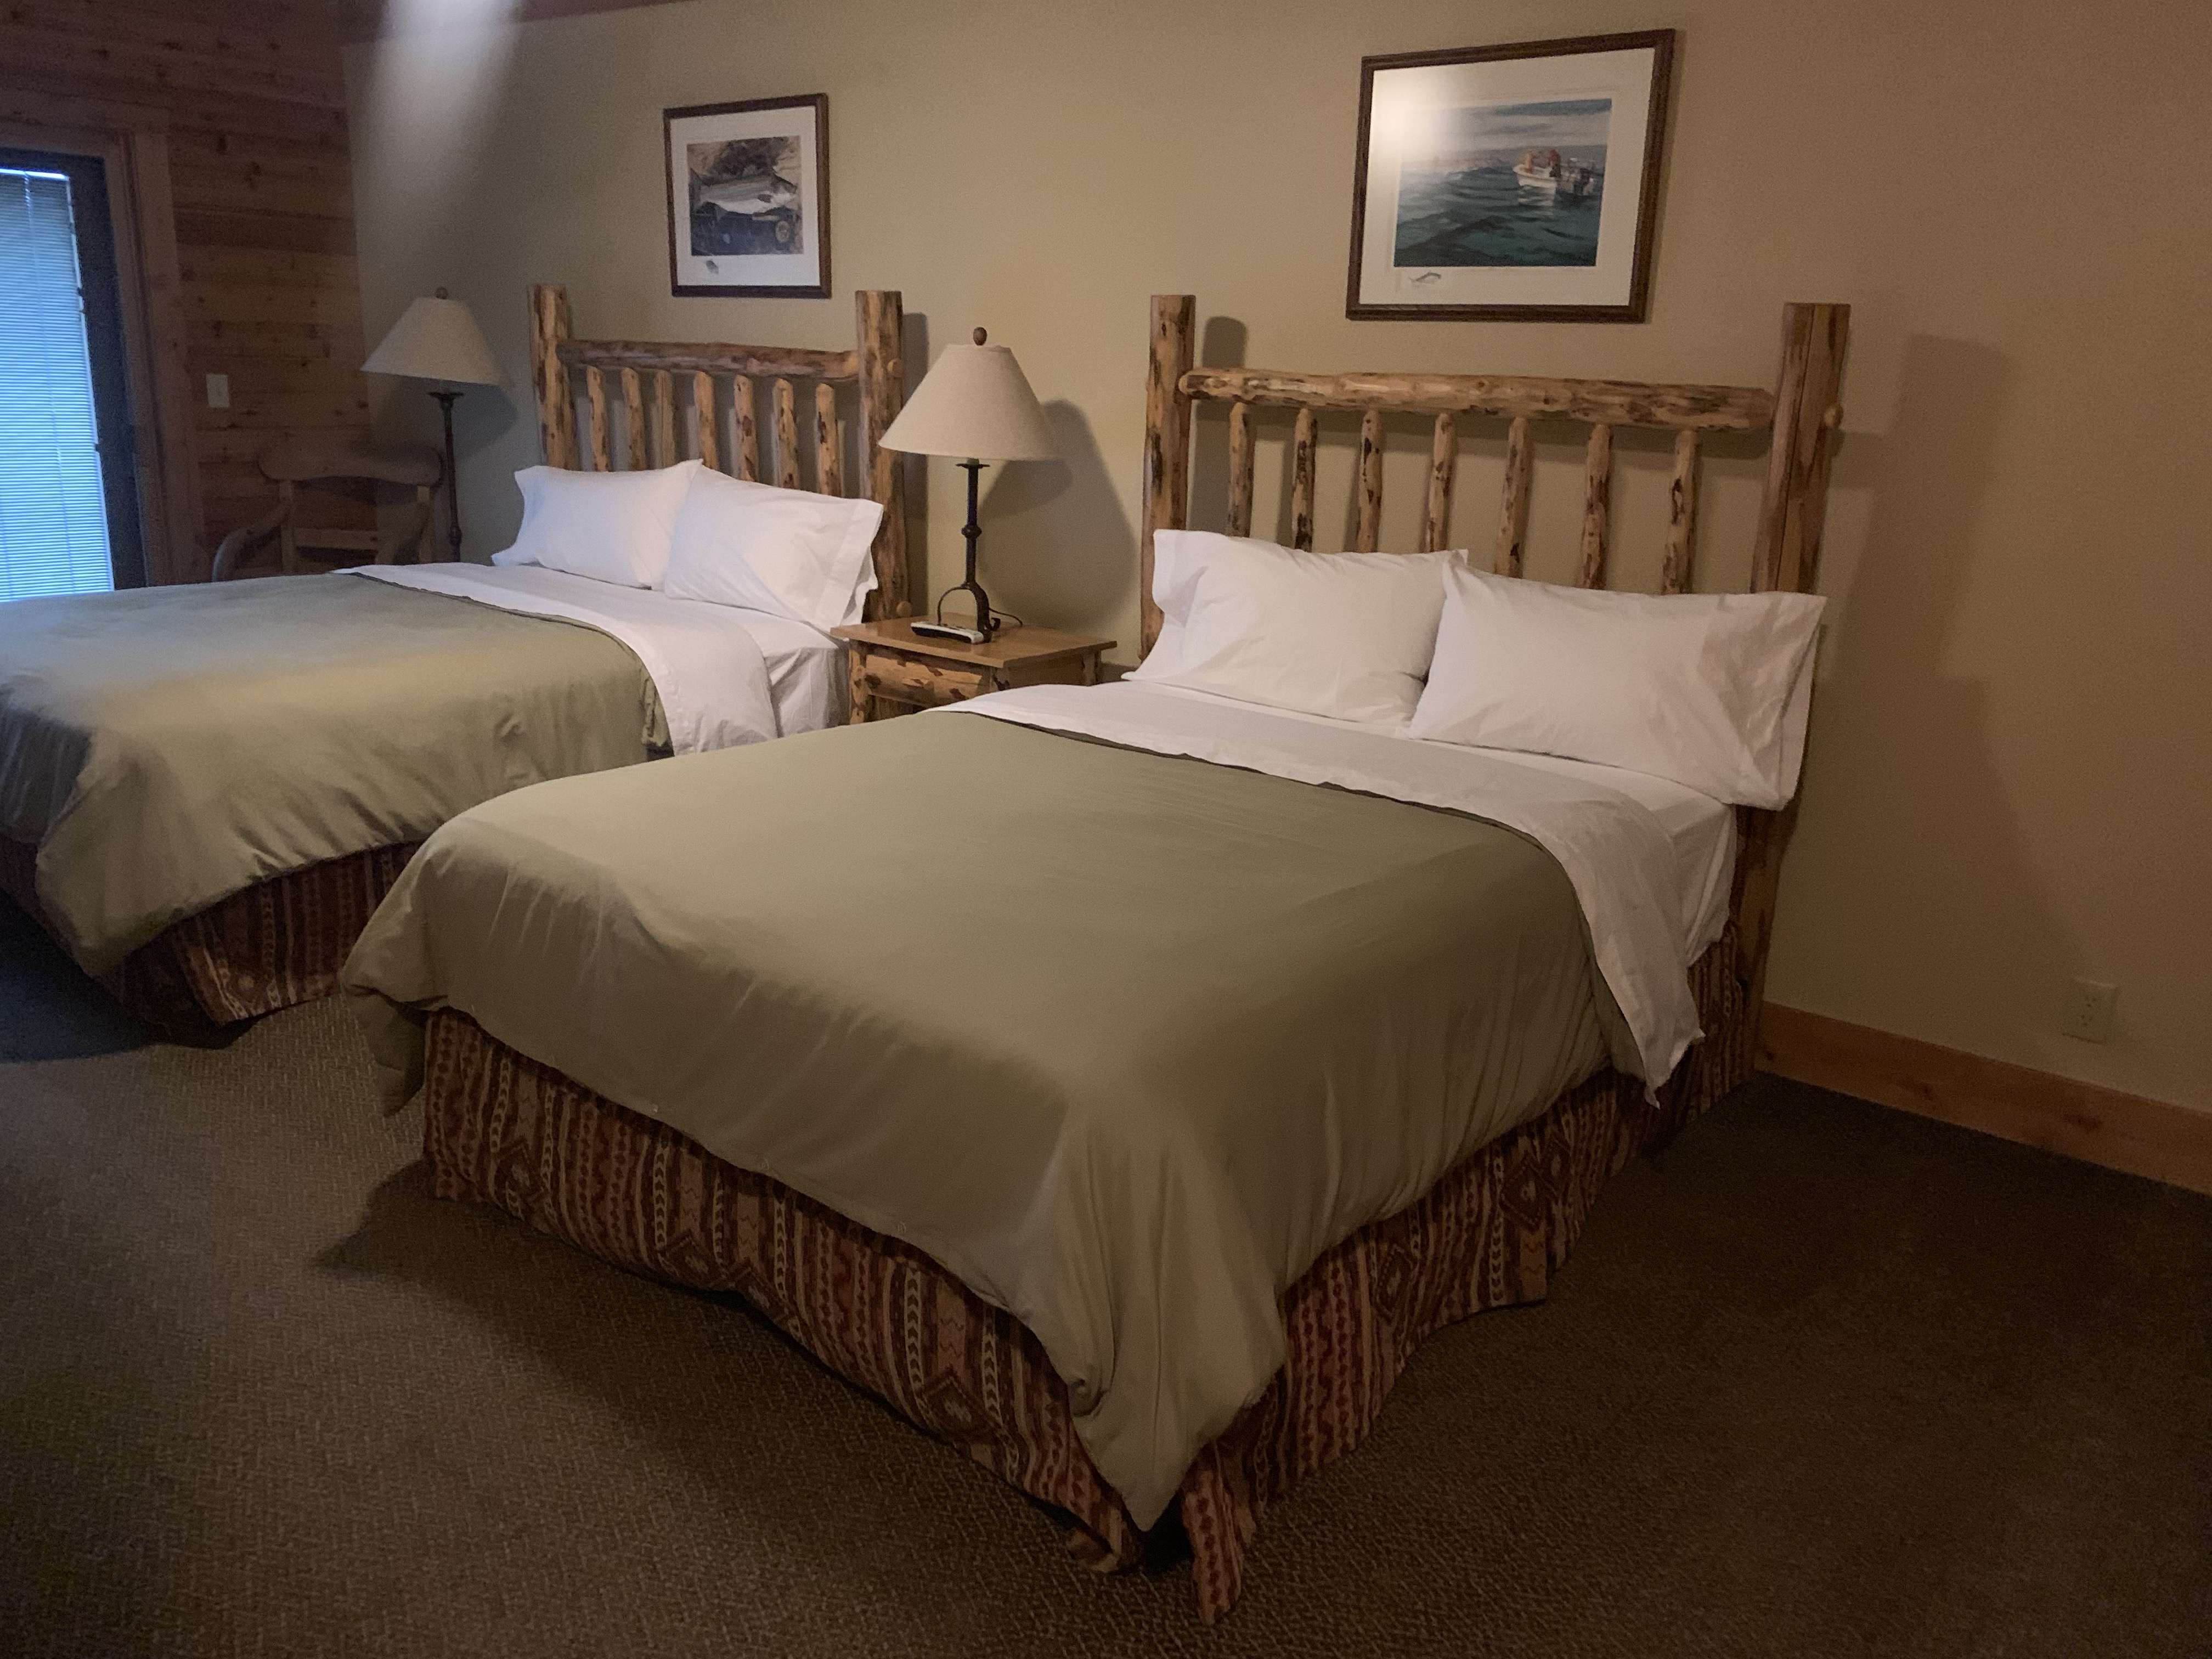 Photo of a room at TroutHunter Lodge, two queen wood framed beds with simple decor and clean room. For more travel and food posts check out www.sprouting-vitality.com #sproutingvitality #kenzinthekitch #mckenzieonthemove